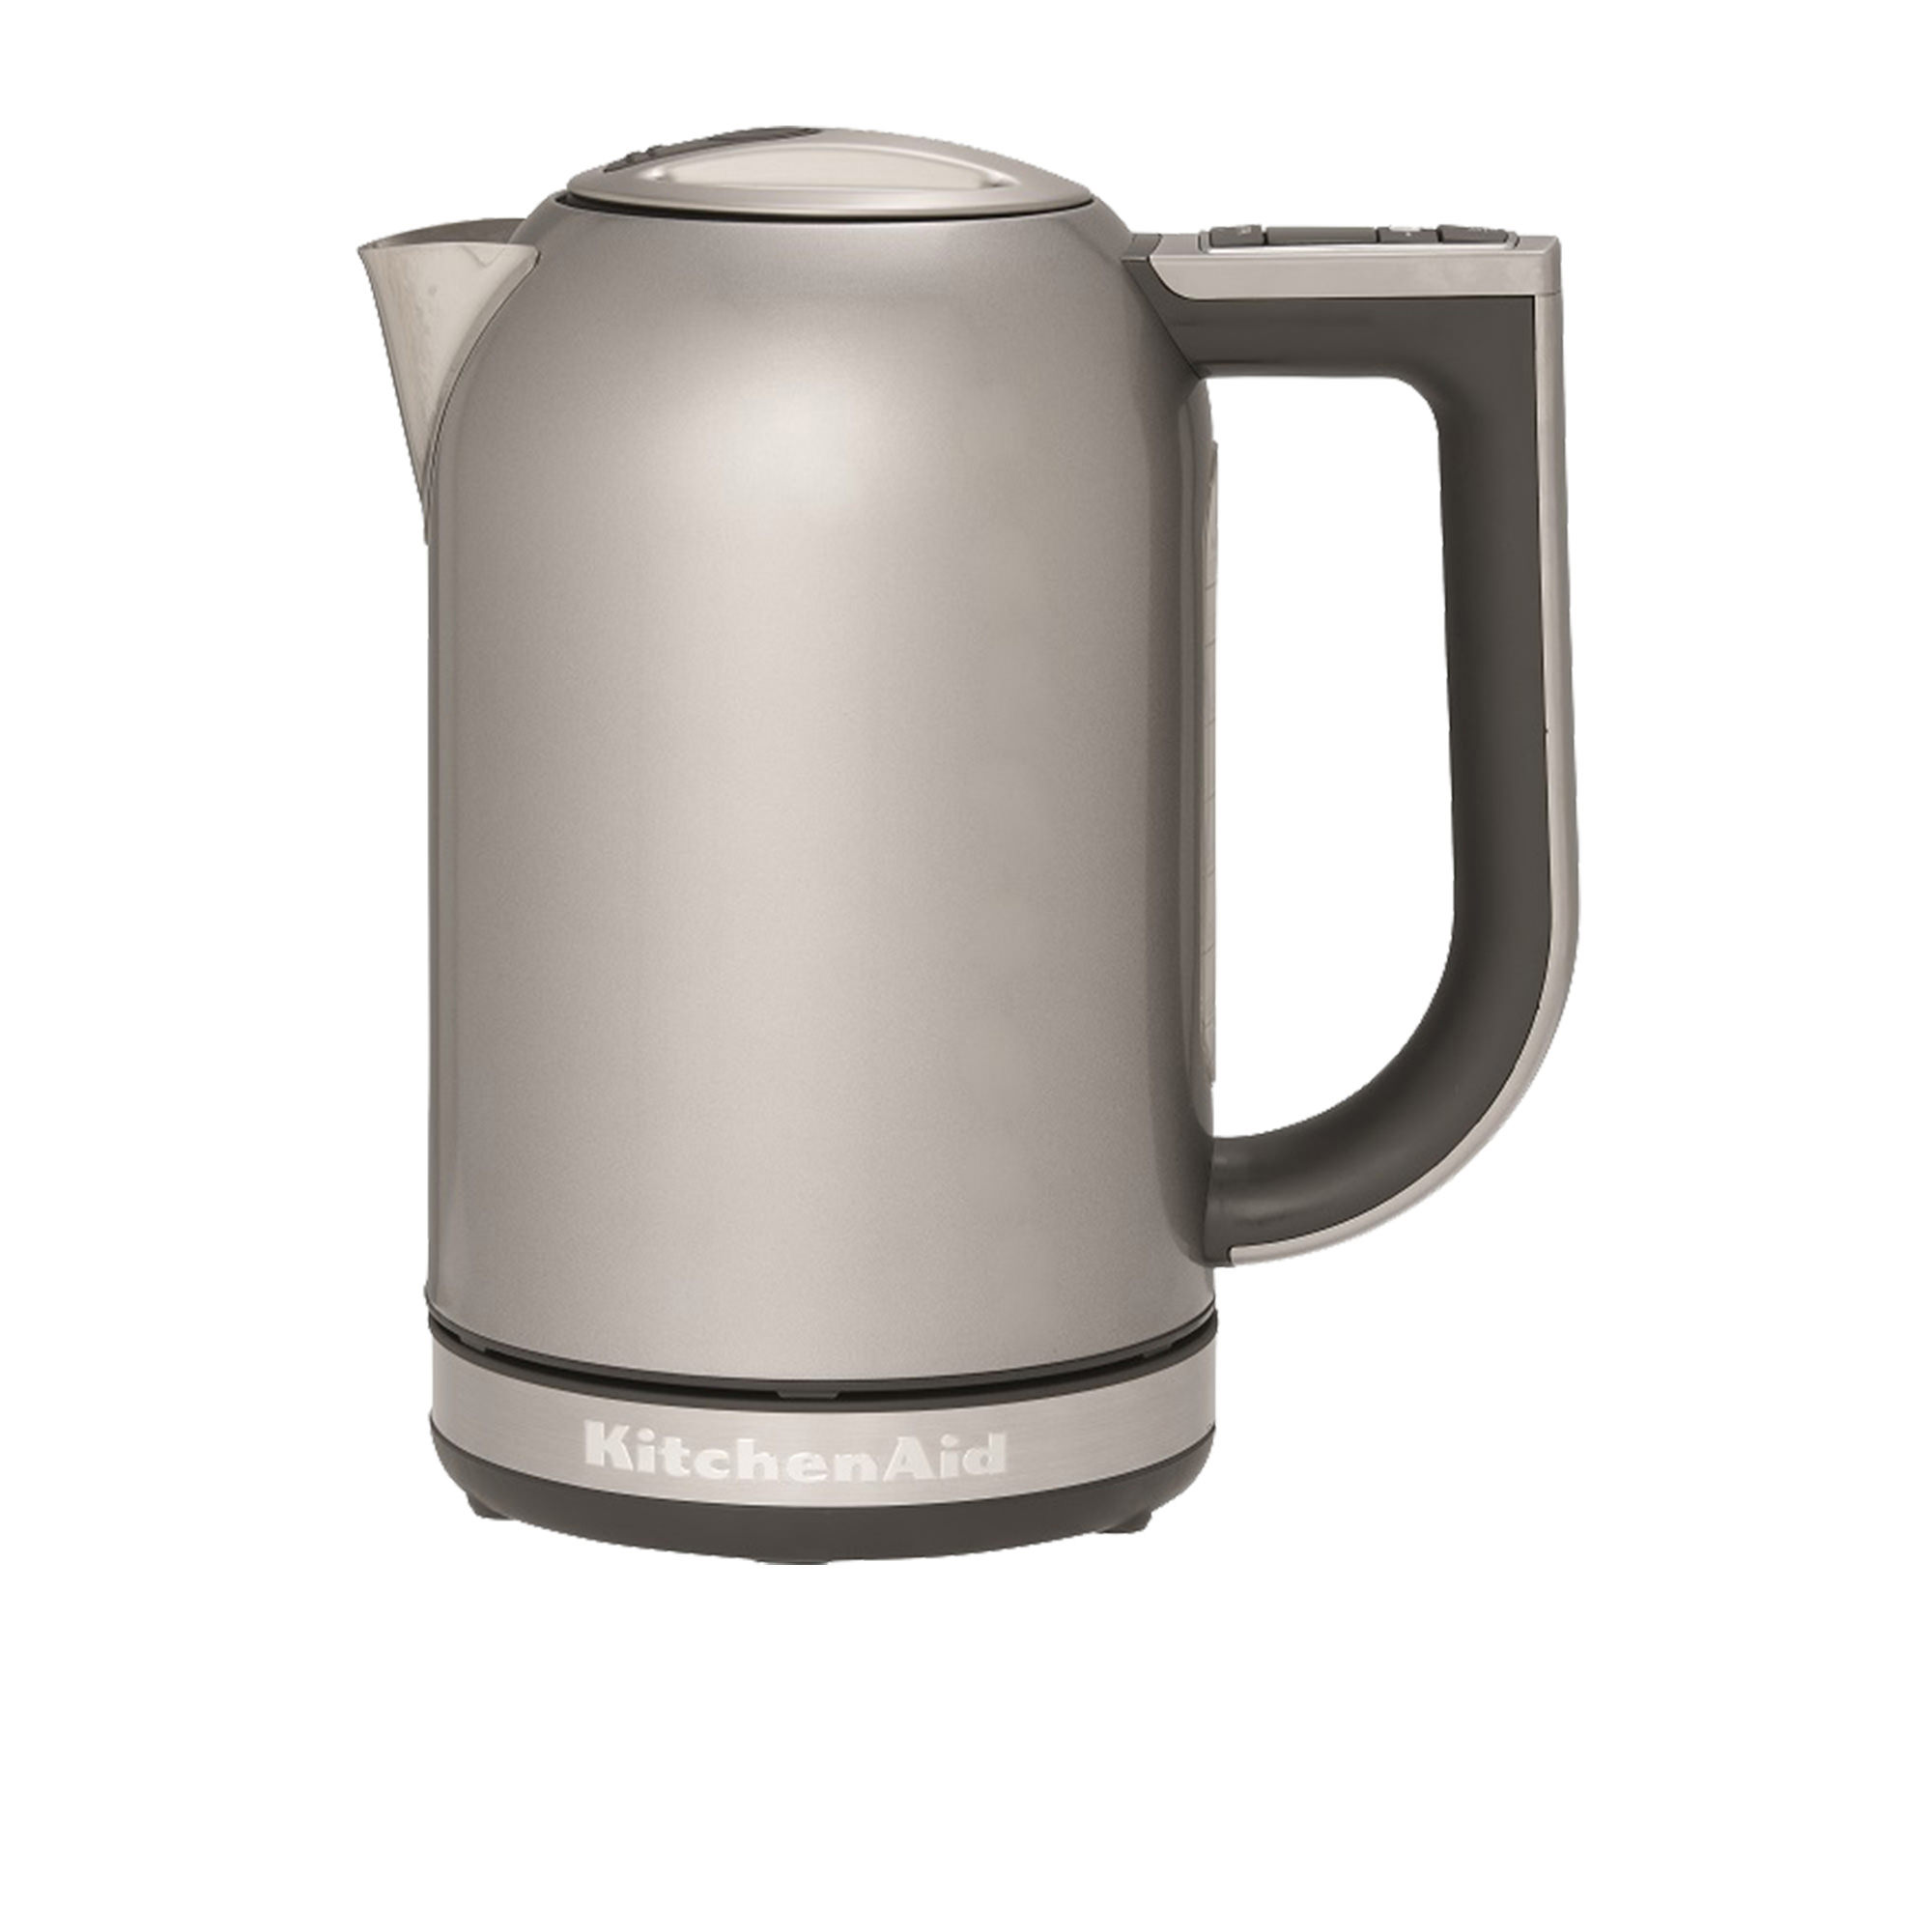 KitchenAid Artisan KEK1835 Electric Kettle 1.7L Contour Silver